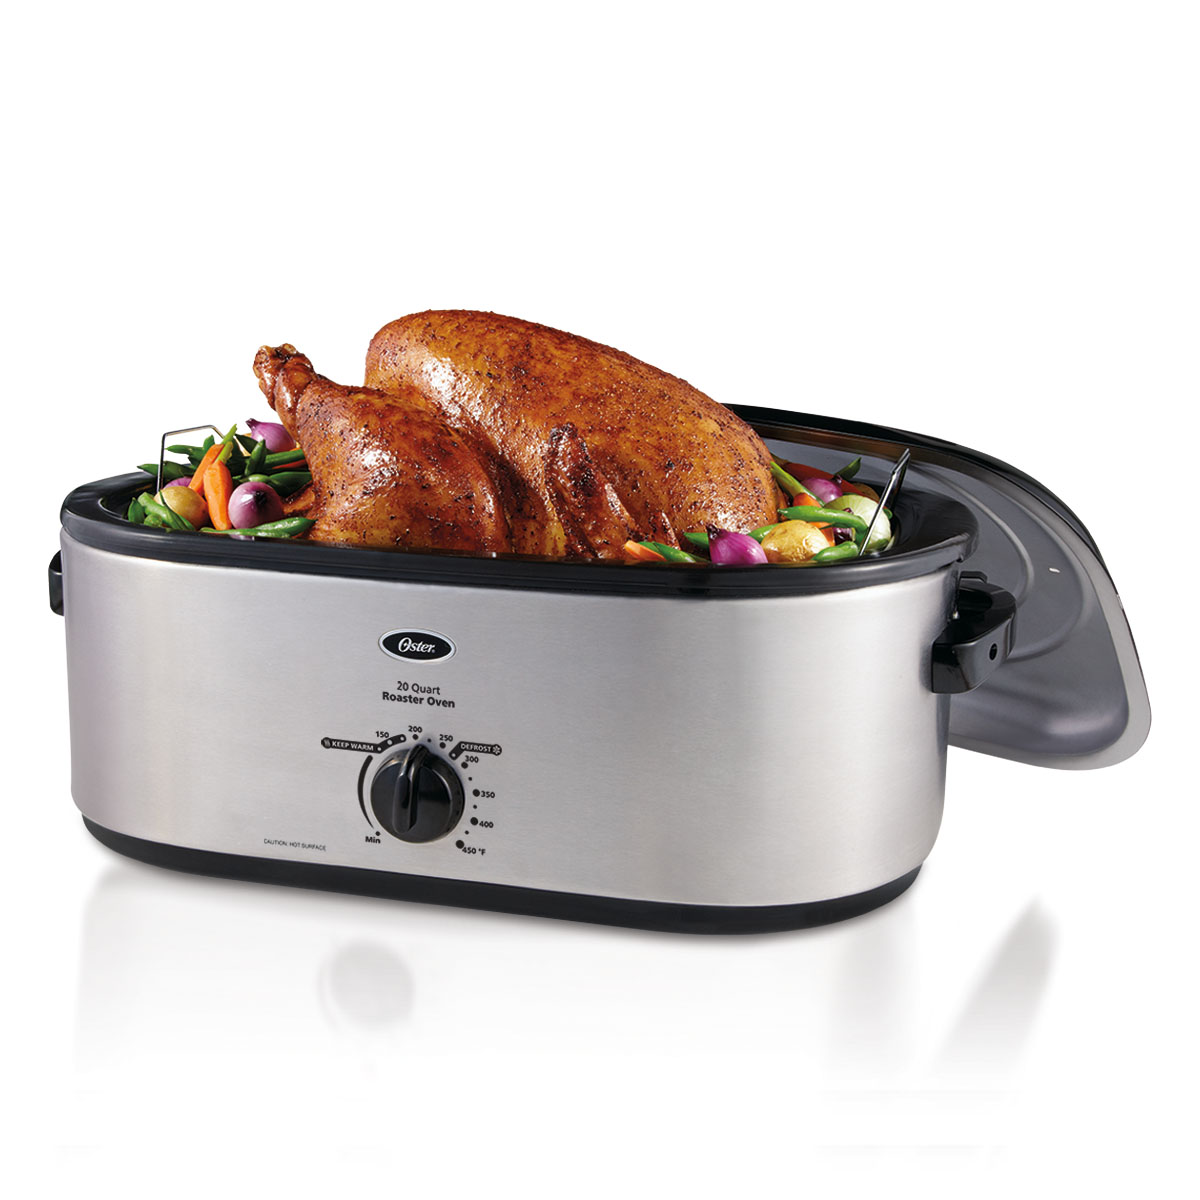 Oster 24-Pound Turkey Roaster Oven, 20-Quart Capacity, Stainless-Steel New!